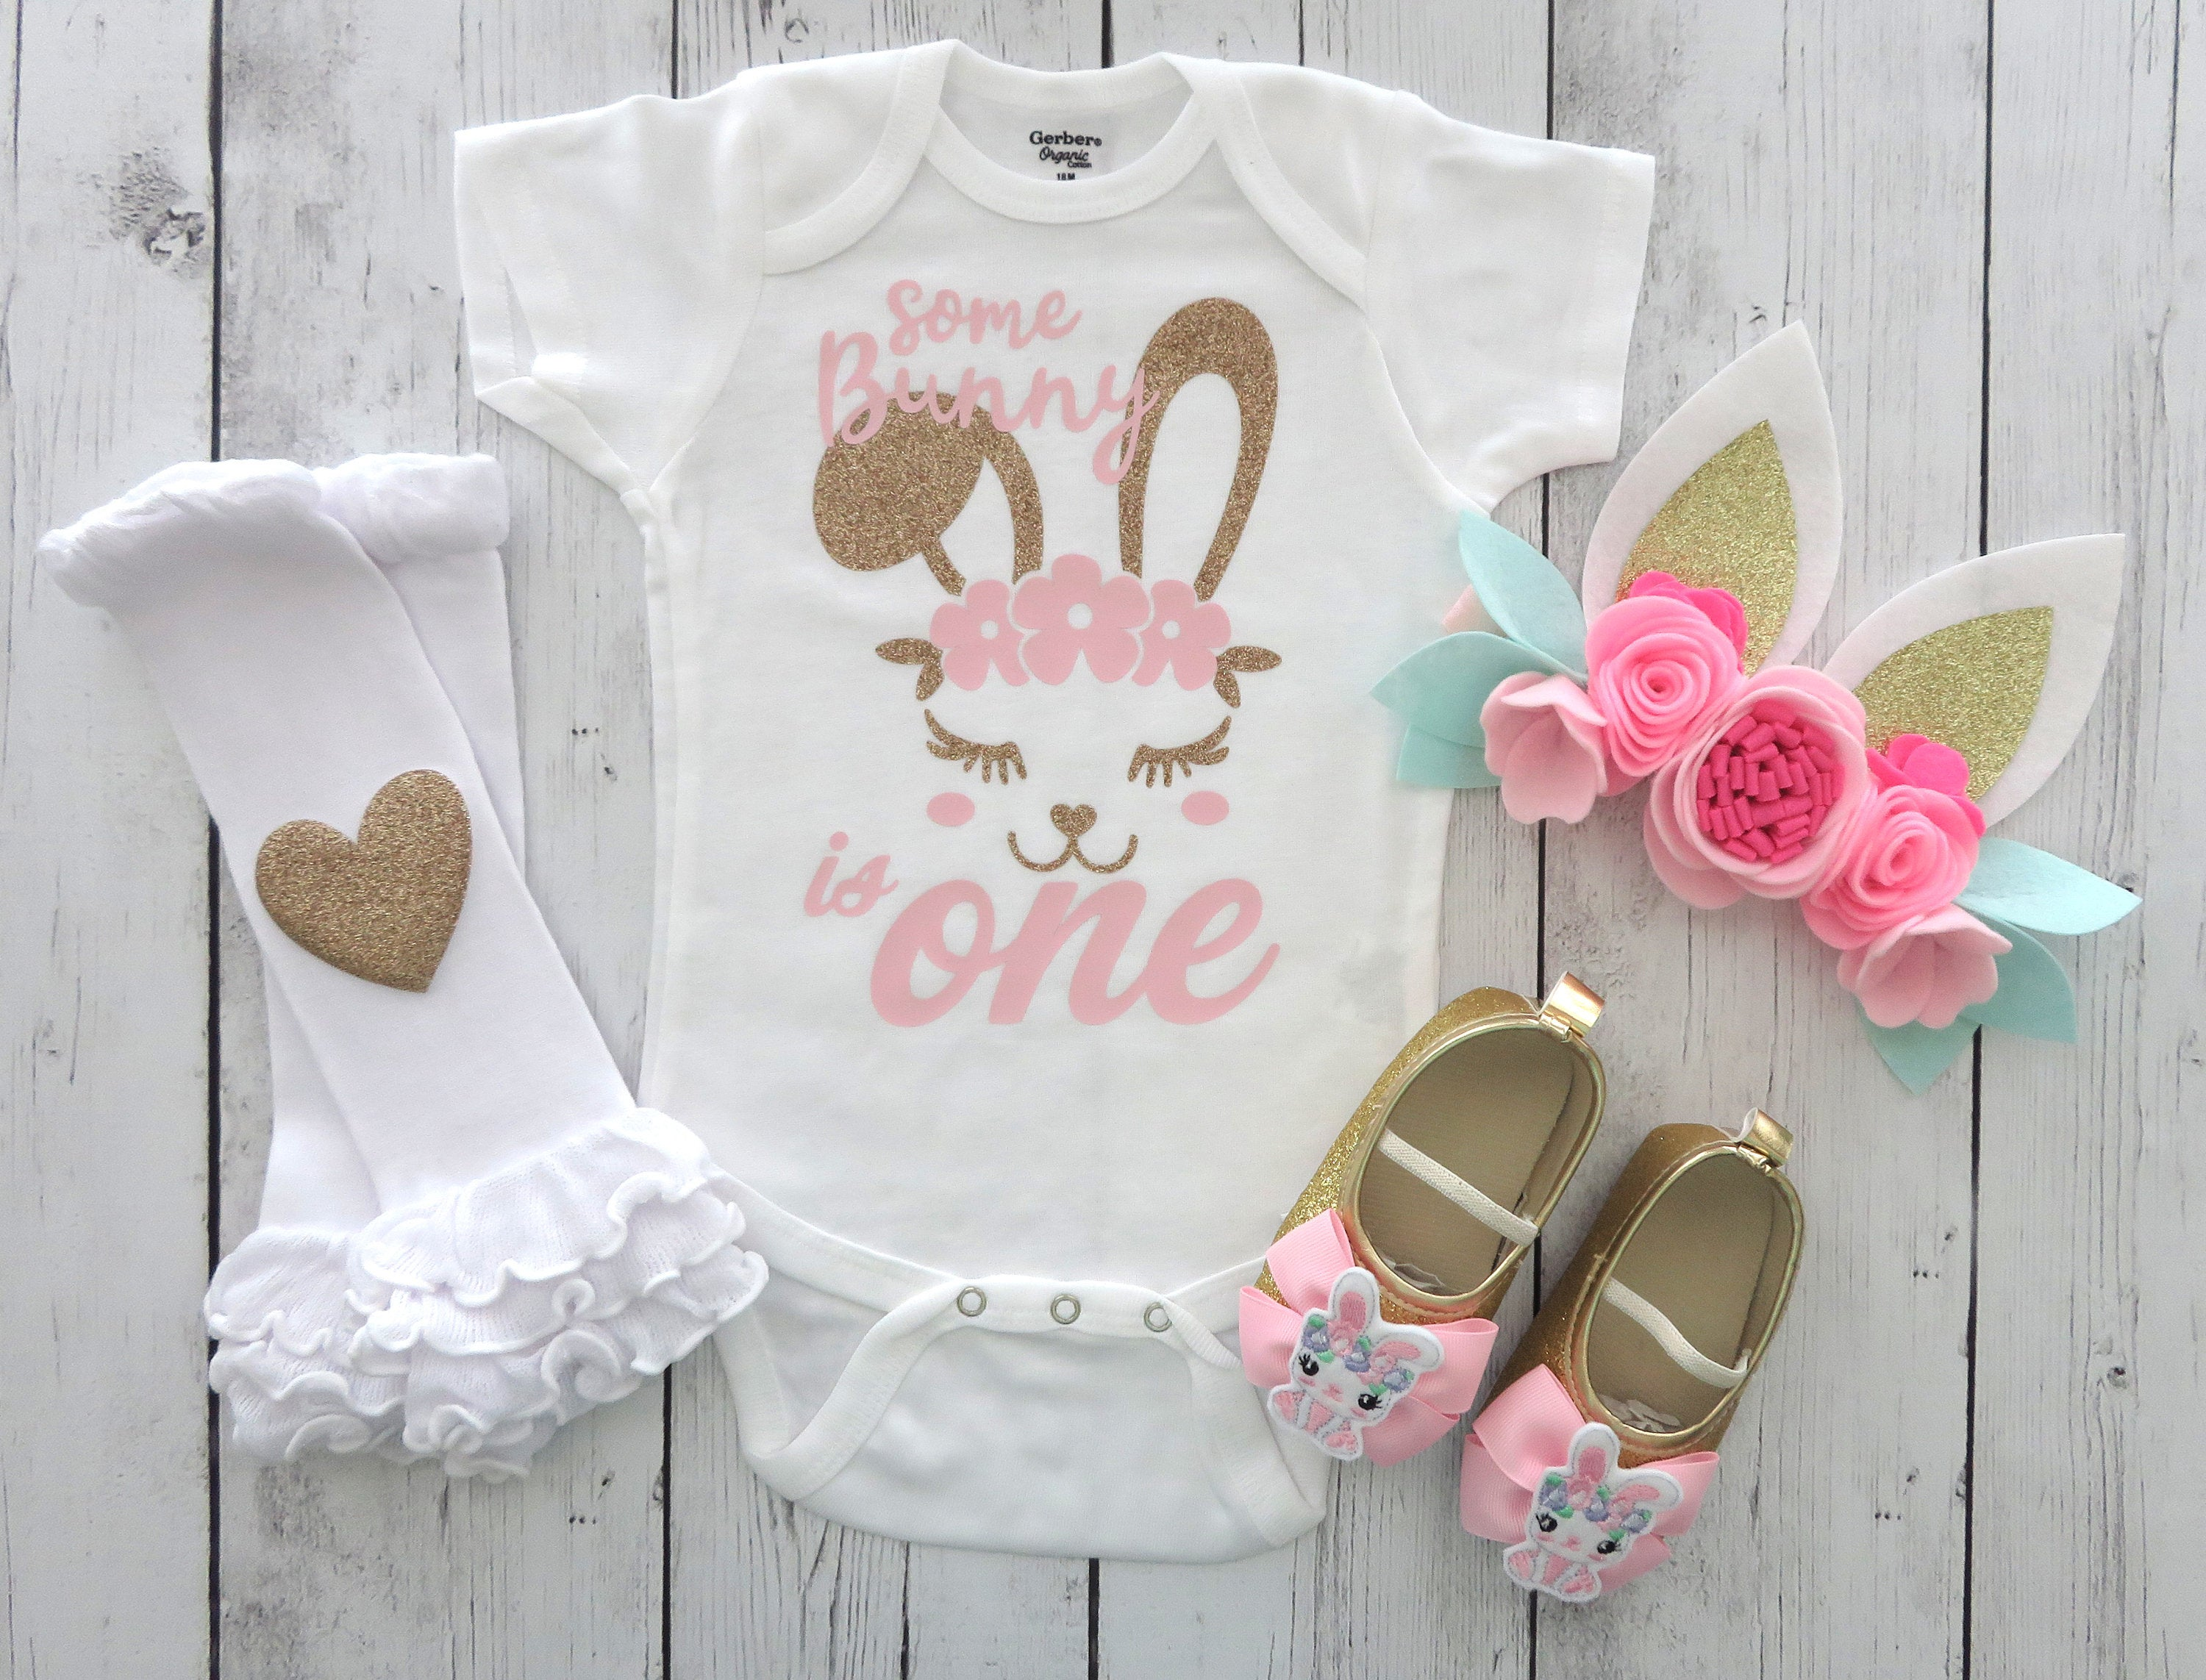 Some Bunny is One Birthday Onesie in pink and gold- bunny 1st bday outfit, bunny ear headband, bunny shoes, bunny birthday outfit girl